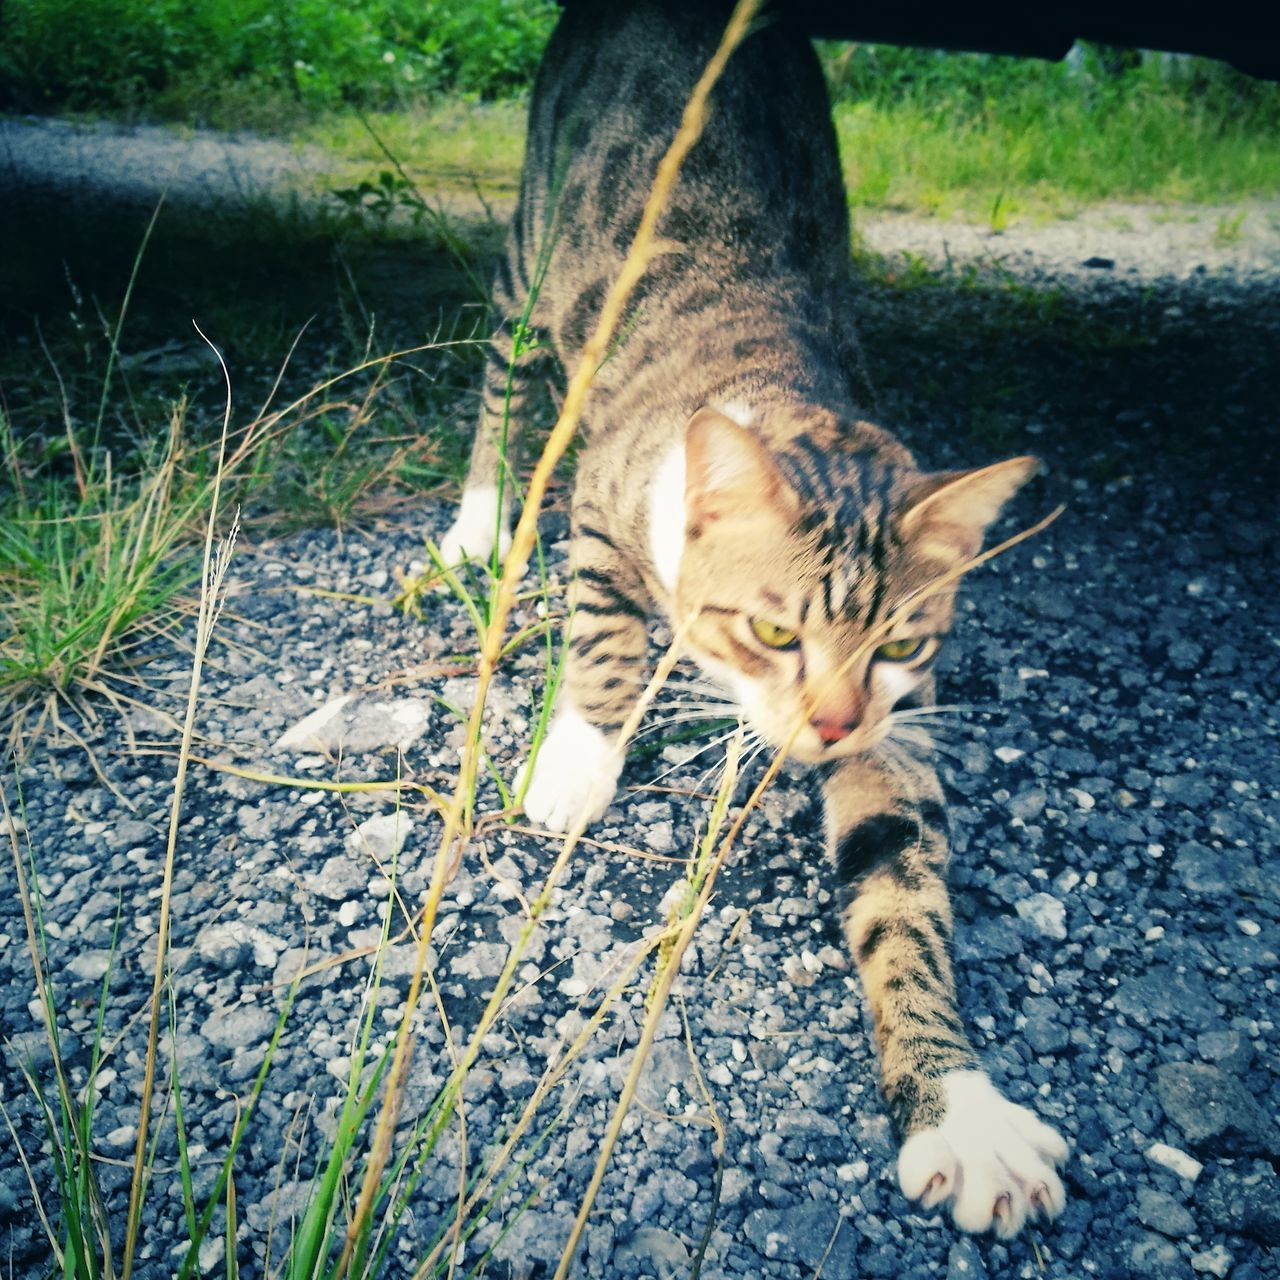 Wild cat. One Animal Animal Themes Domestic Cat Mammal Domestic Animals Pets Kitten Outdoors Huaweiphotography No People Hua Wei P9 Plus Homelessness  HuaweiP9 Animal Huawei P9 Plus HuaweiP9Photography Homeless Cats Cat Homeless Homeless Animal Animalphotography Homeless Kitten Homeless Cat Homelessness